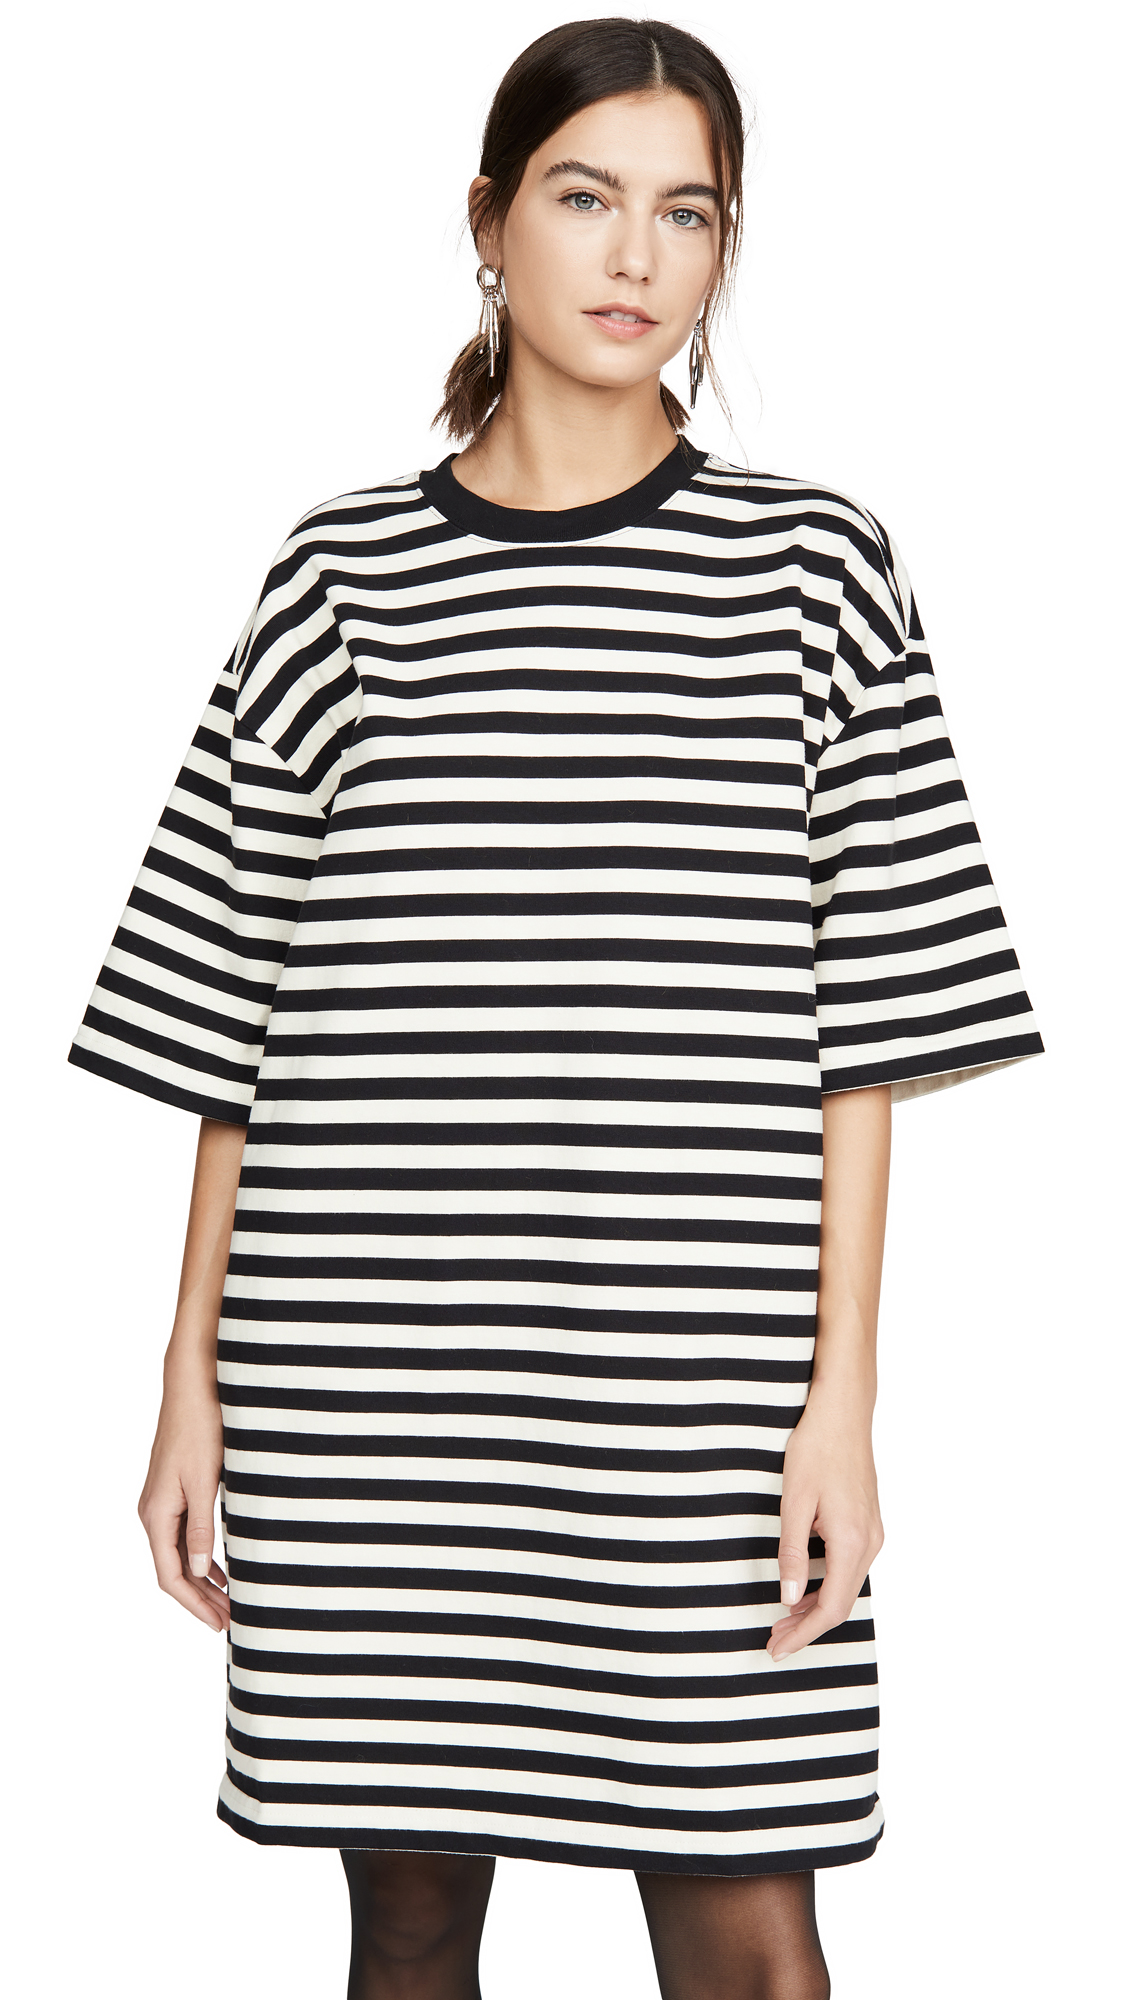 Buy The Marc Jacobs Striped T-Shirt Dress online beautiful The Marc Jacobs Clothing, Dresses